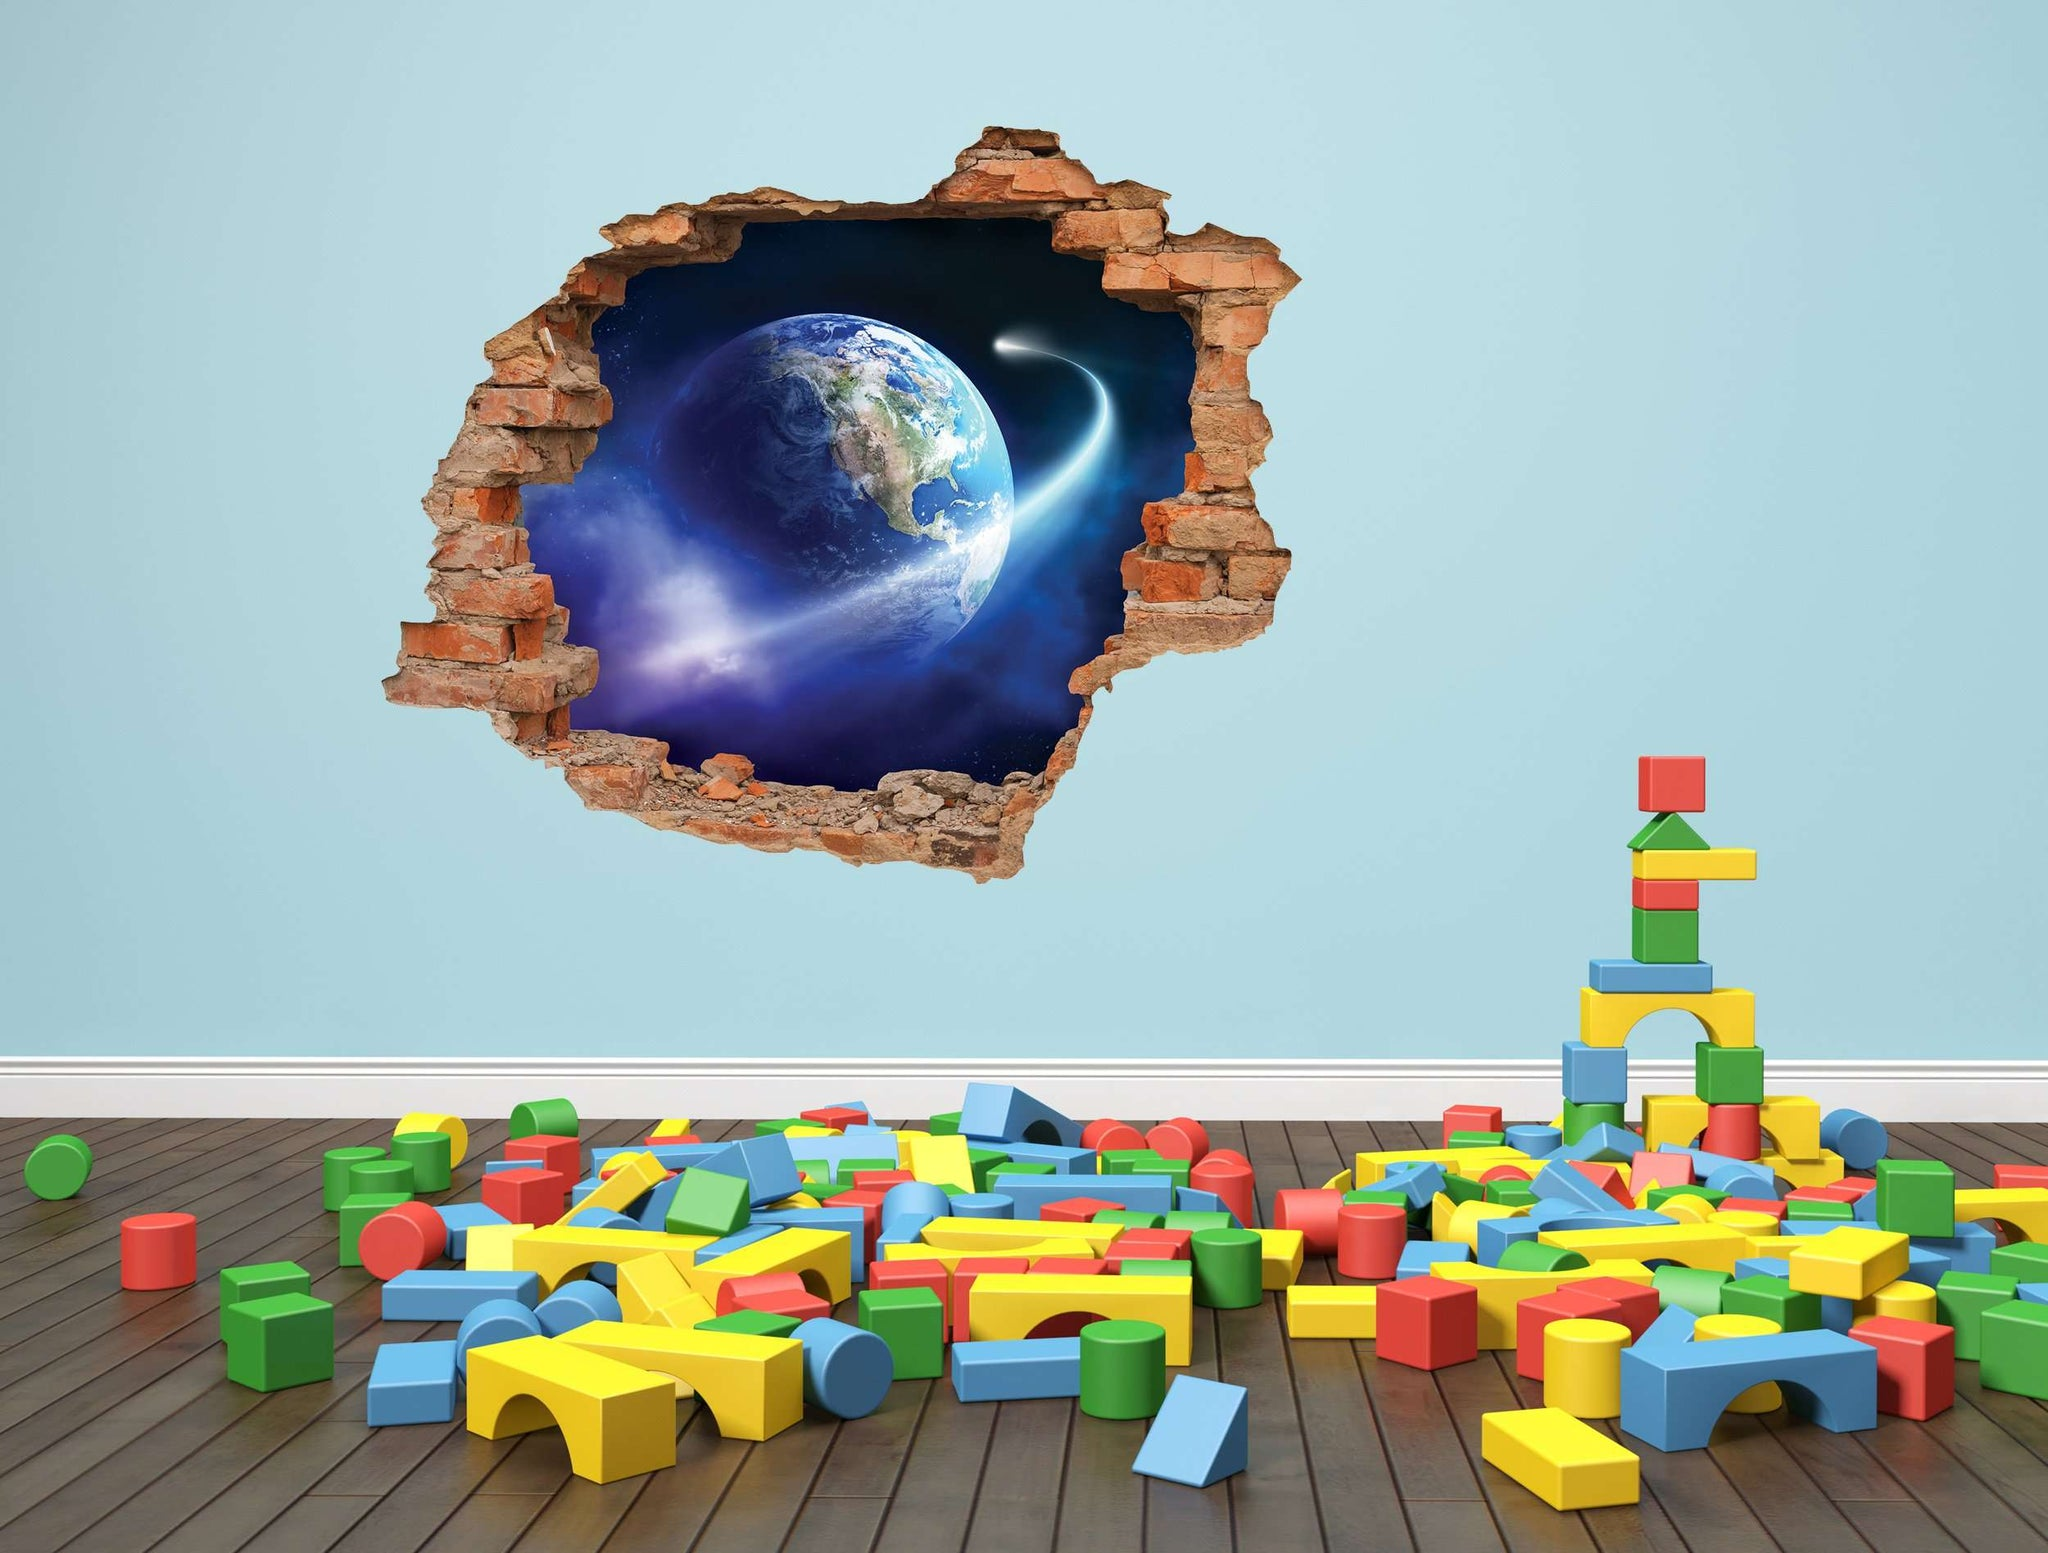 3D Art zidne naljepnice Space - 3D021